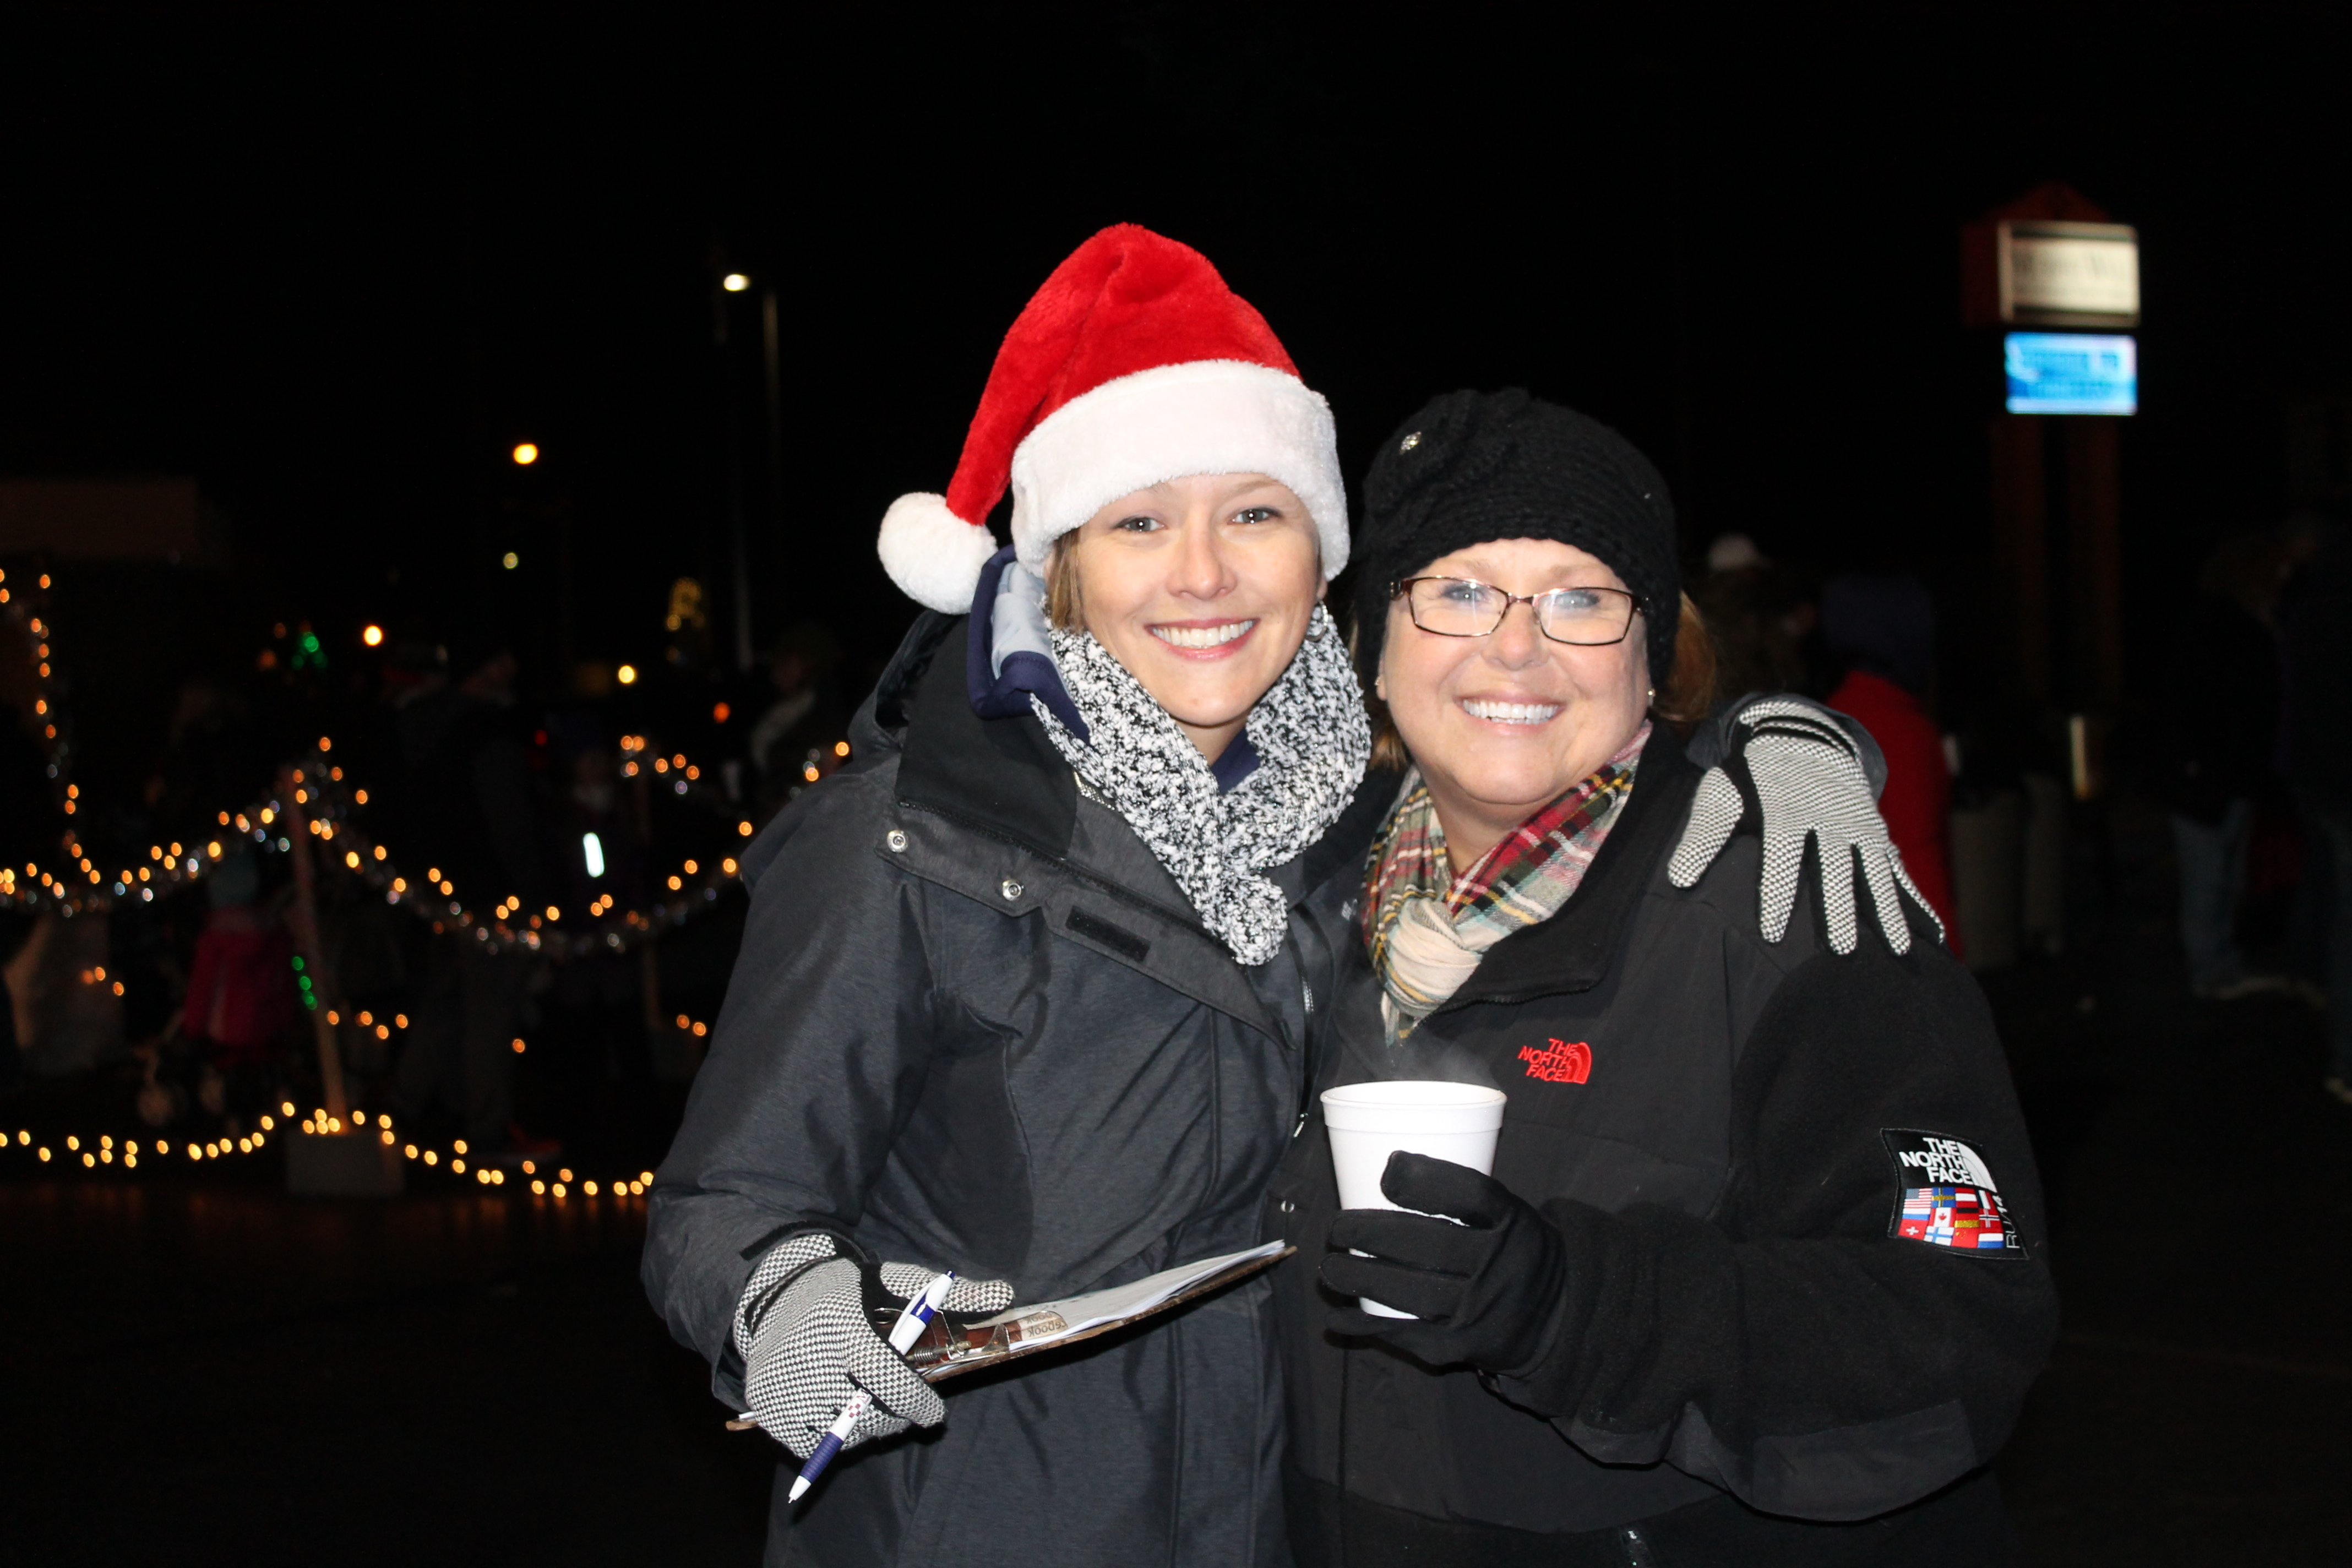 Murphy-Wall State Bank and Trust Company employees VP Sarah Folden and VP Claudia Choate smile for the event